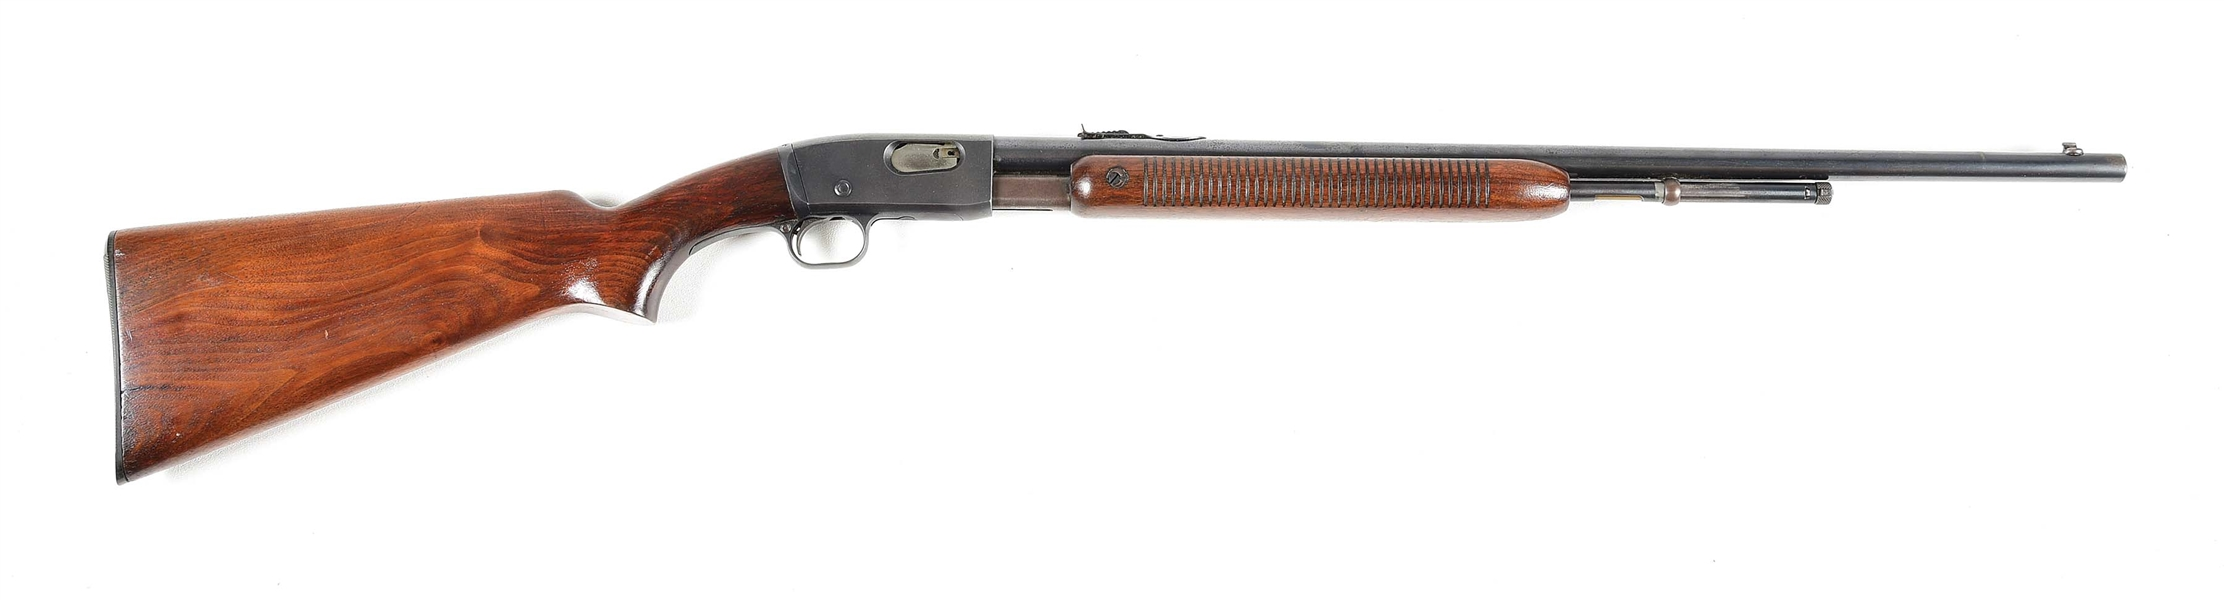 (C) REMINGTON MODEL 121 FIELDMASTER .22 LR PUMP ACTION RIFLE.